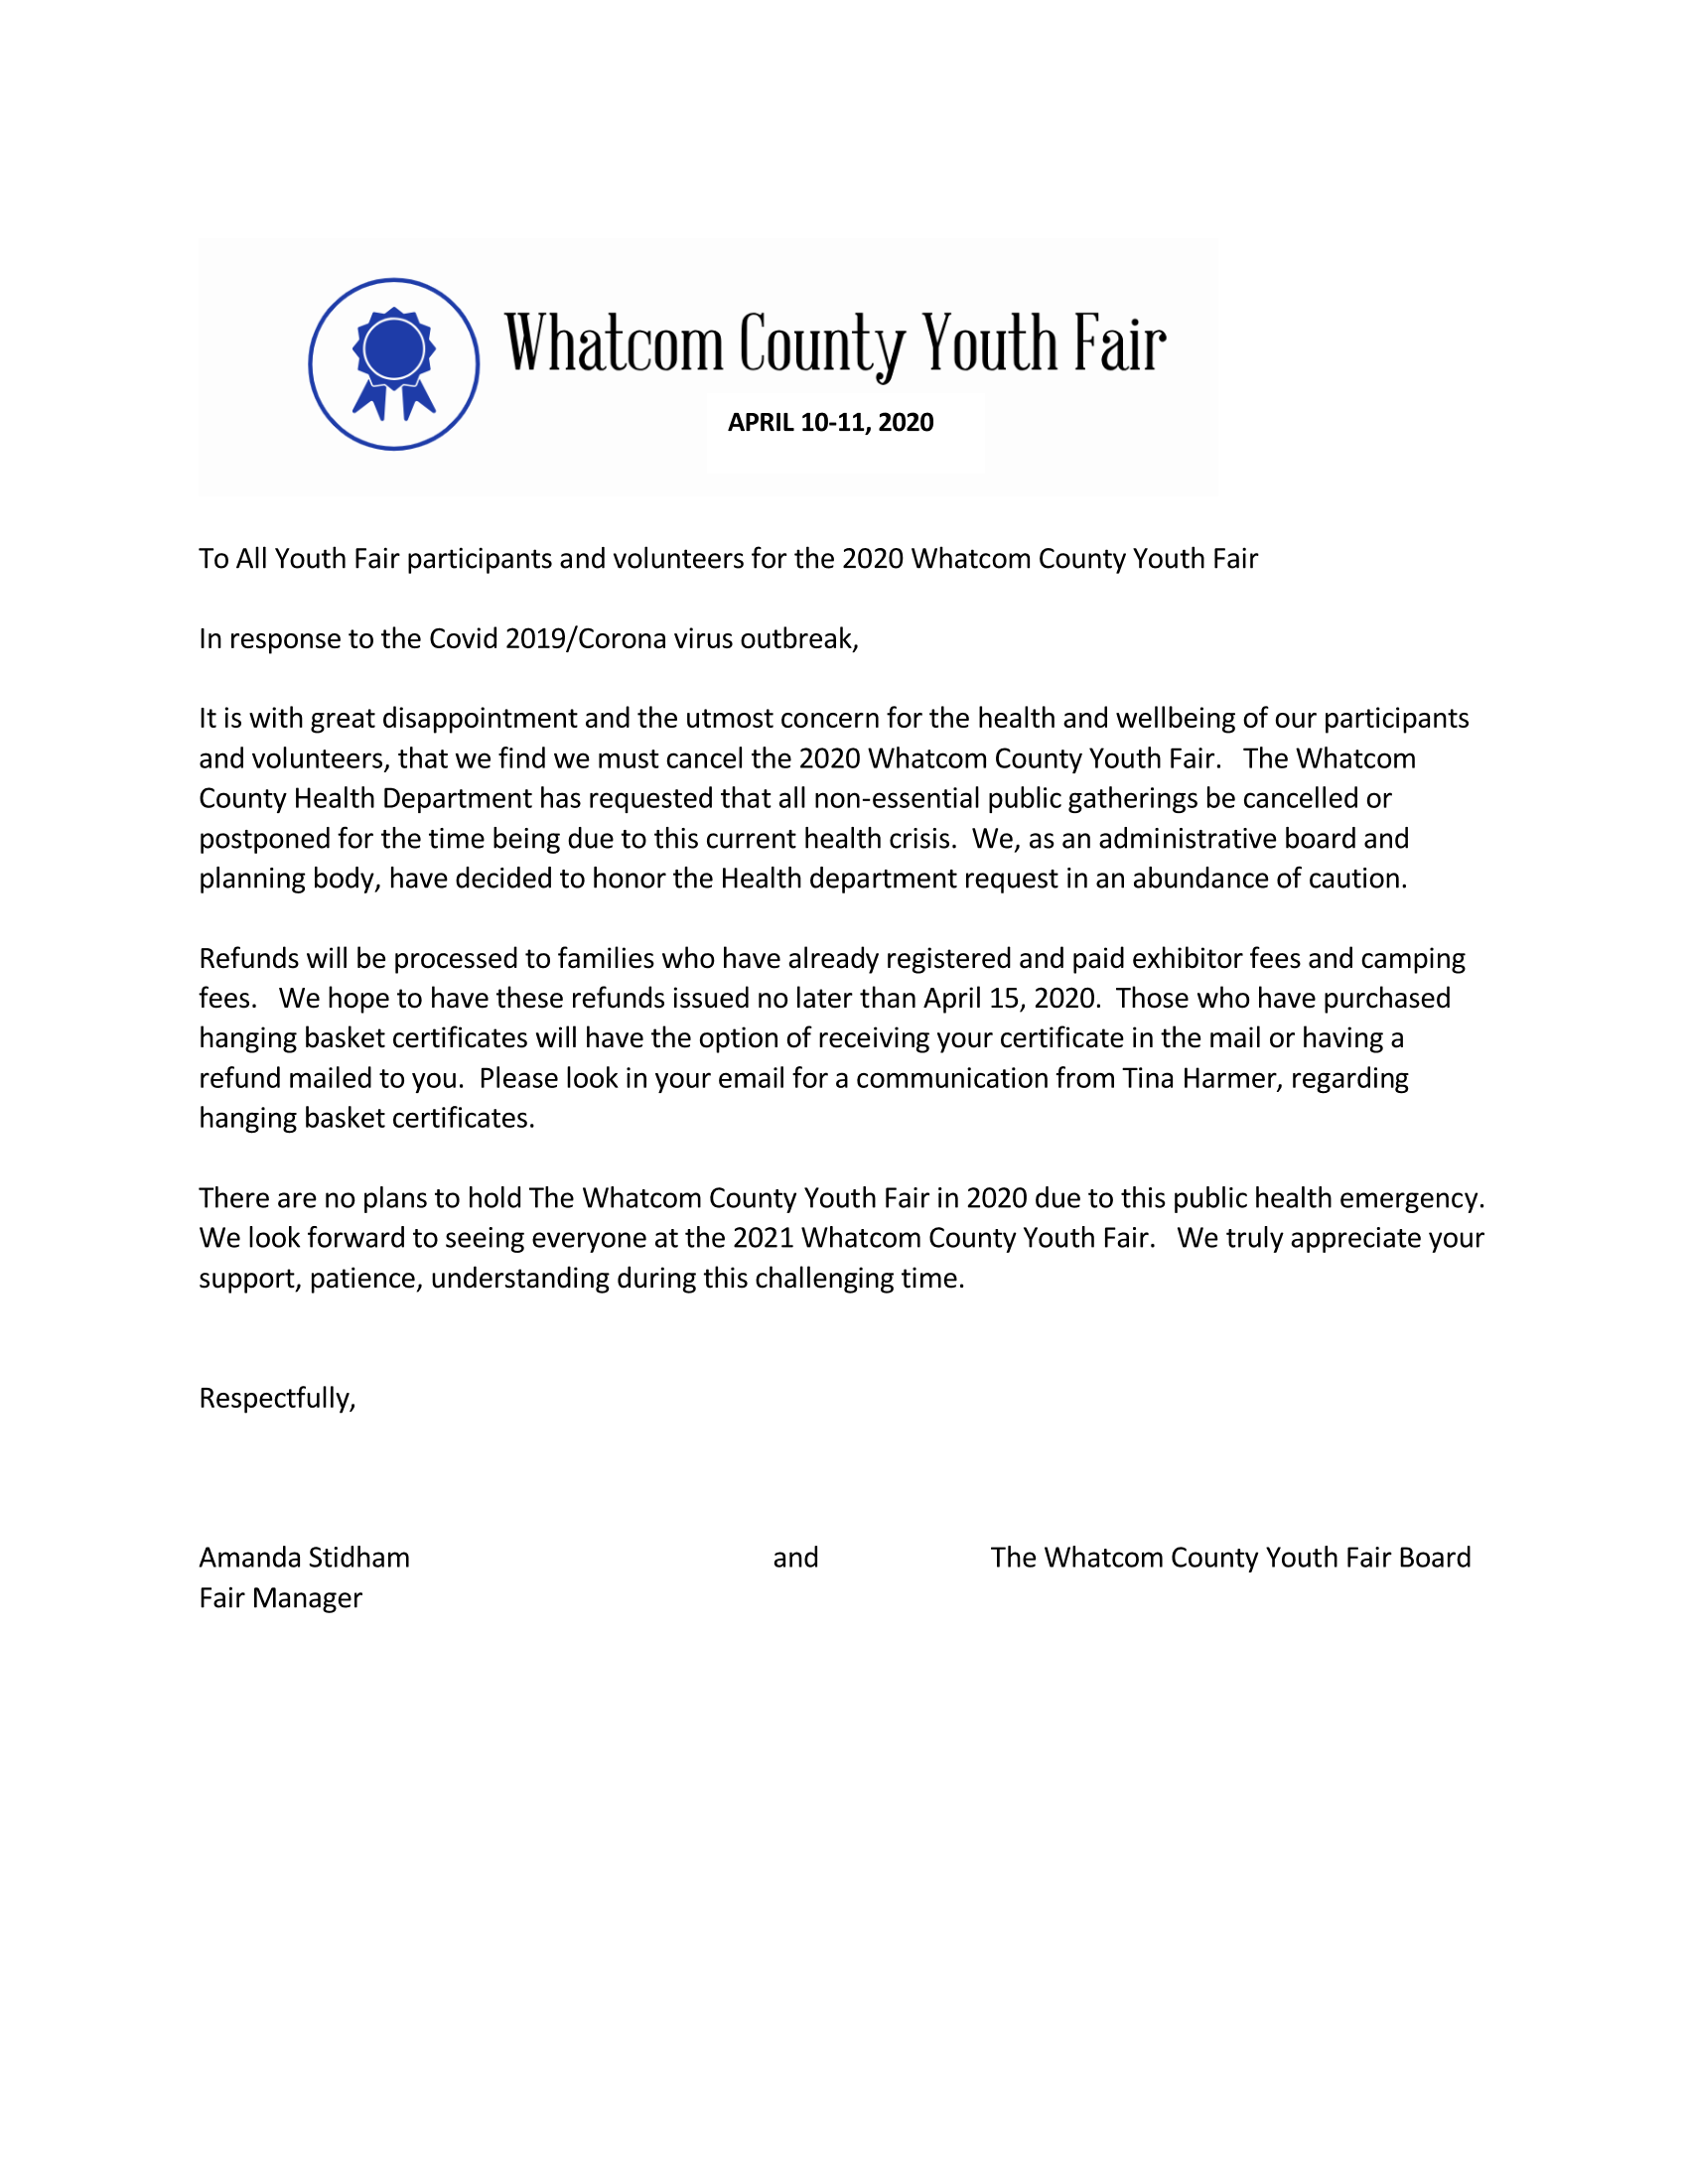 cancel letter for youth fair 2020 (1)_Page_1